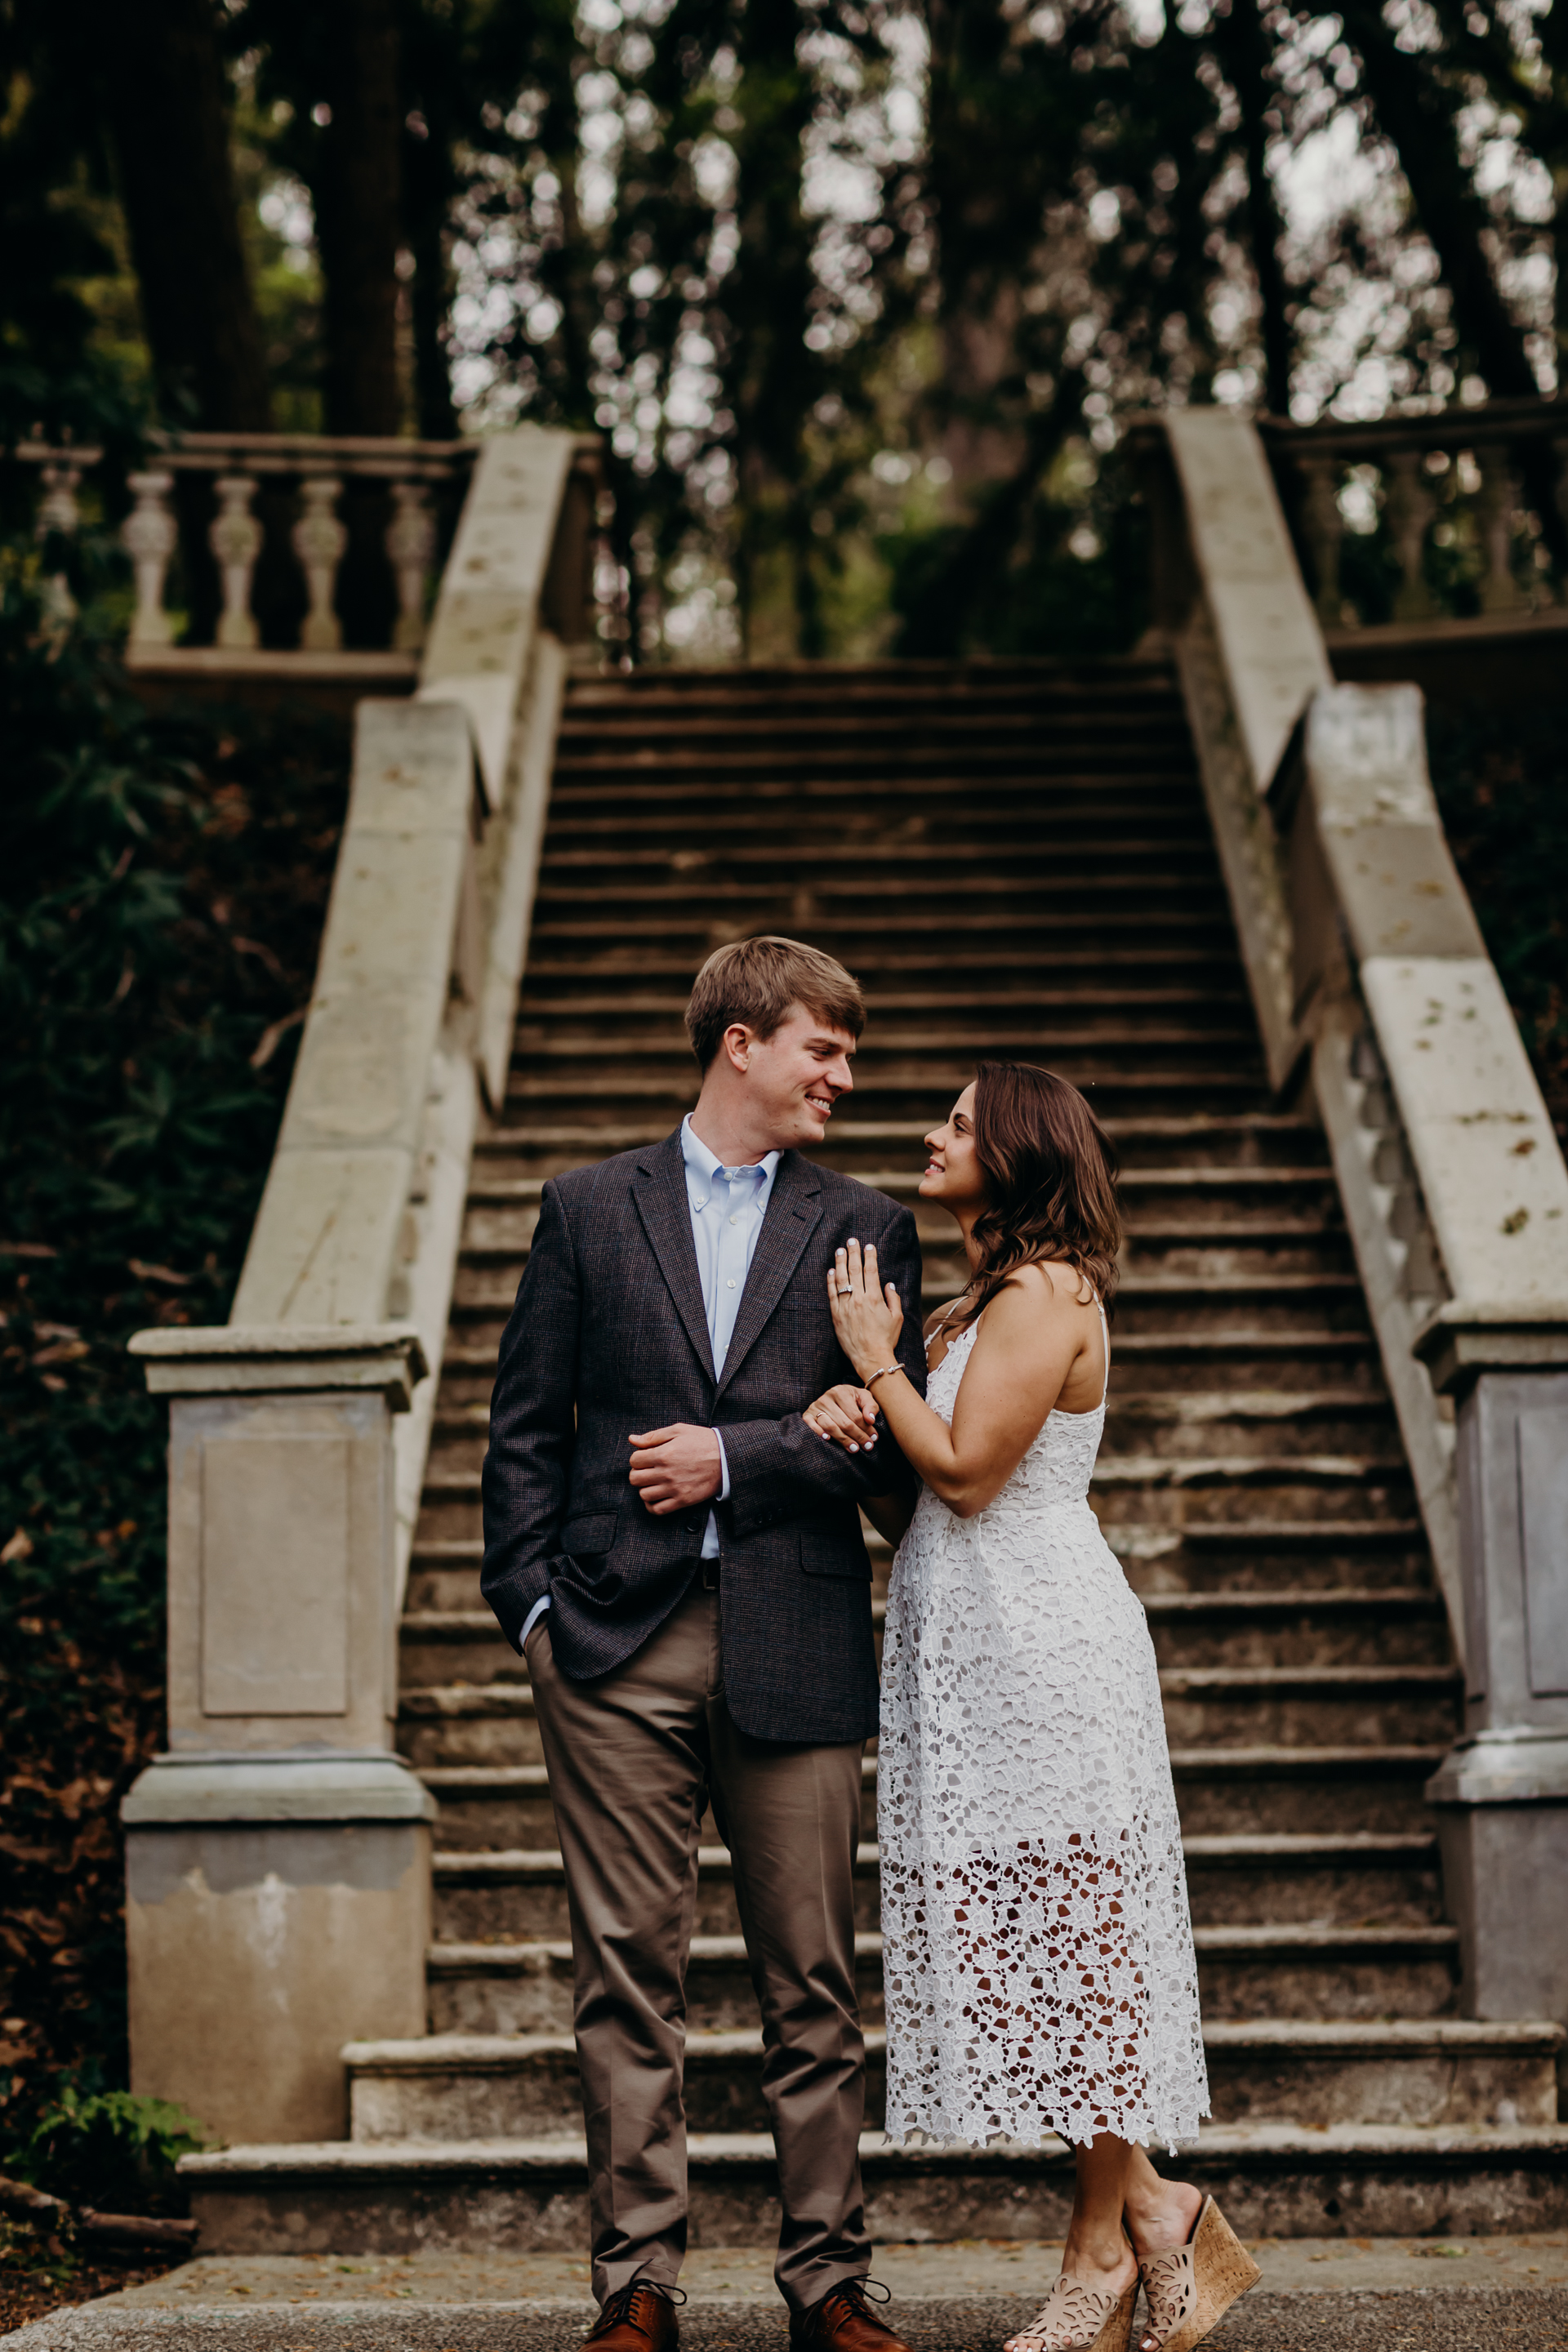 Gianna Keiko Atlanta NYC California Wedding Elopement Photographer_ Engagement-12.jpg